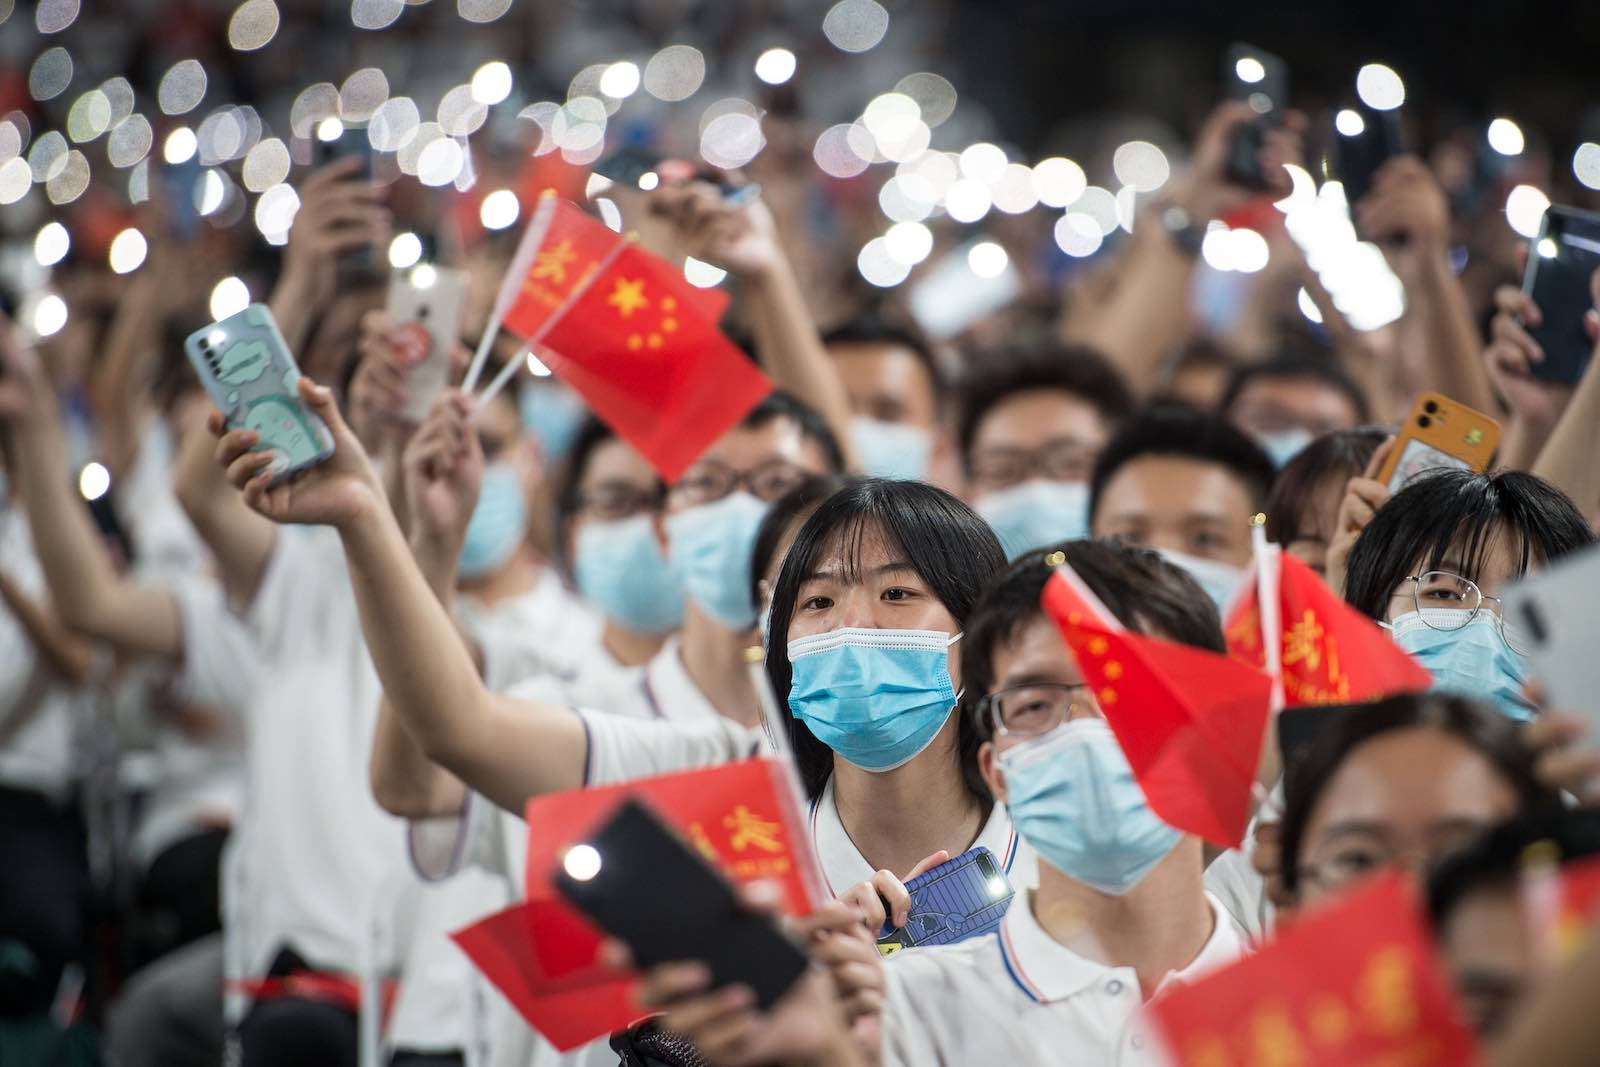 First-year students on 26 September a commencement ceremony at Wuhan University in Wuhan, China (STR/AFP via Getty Images)